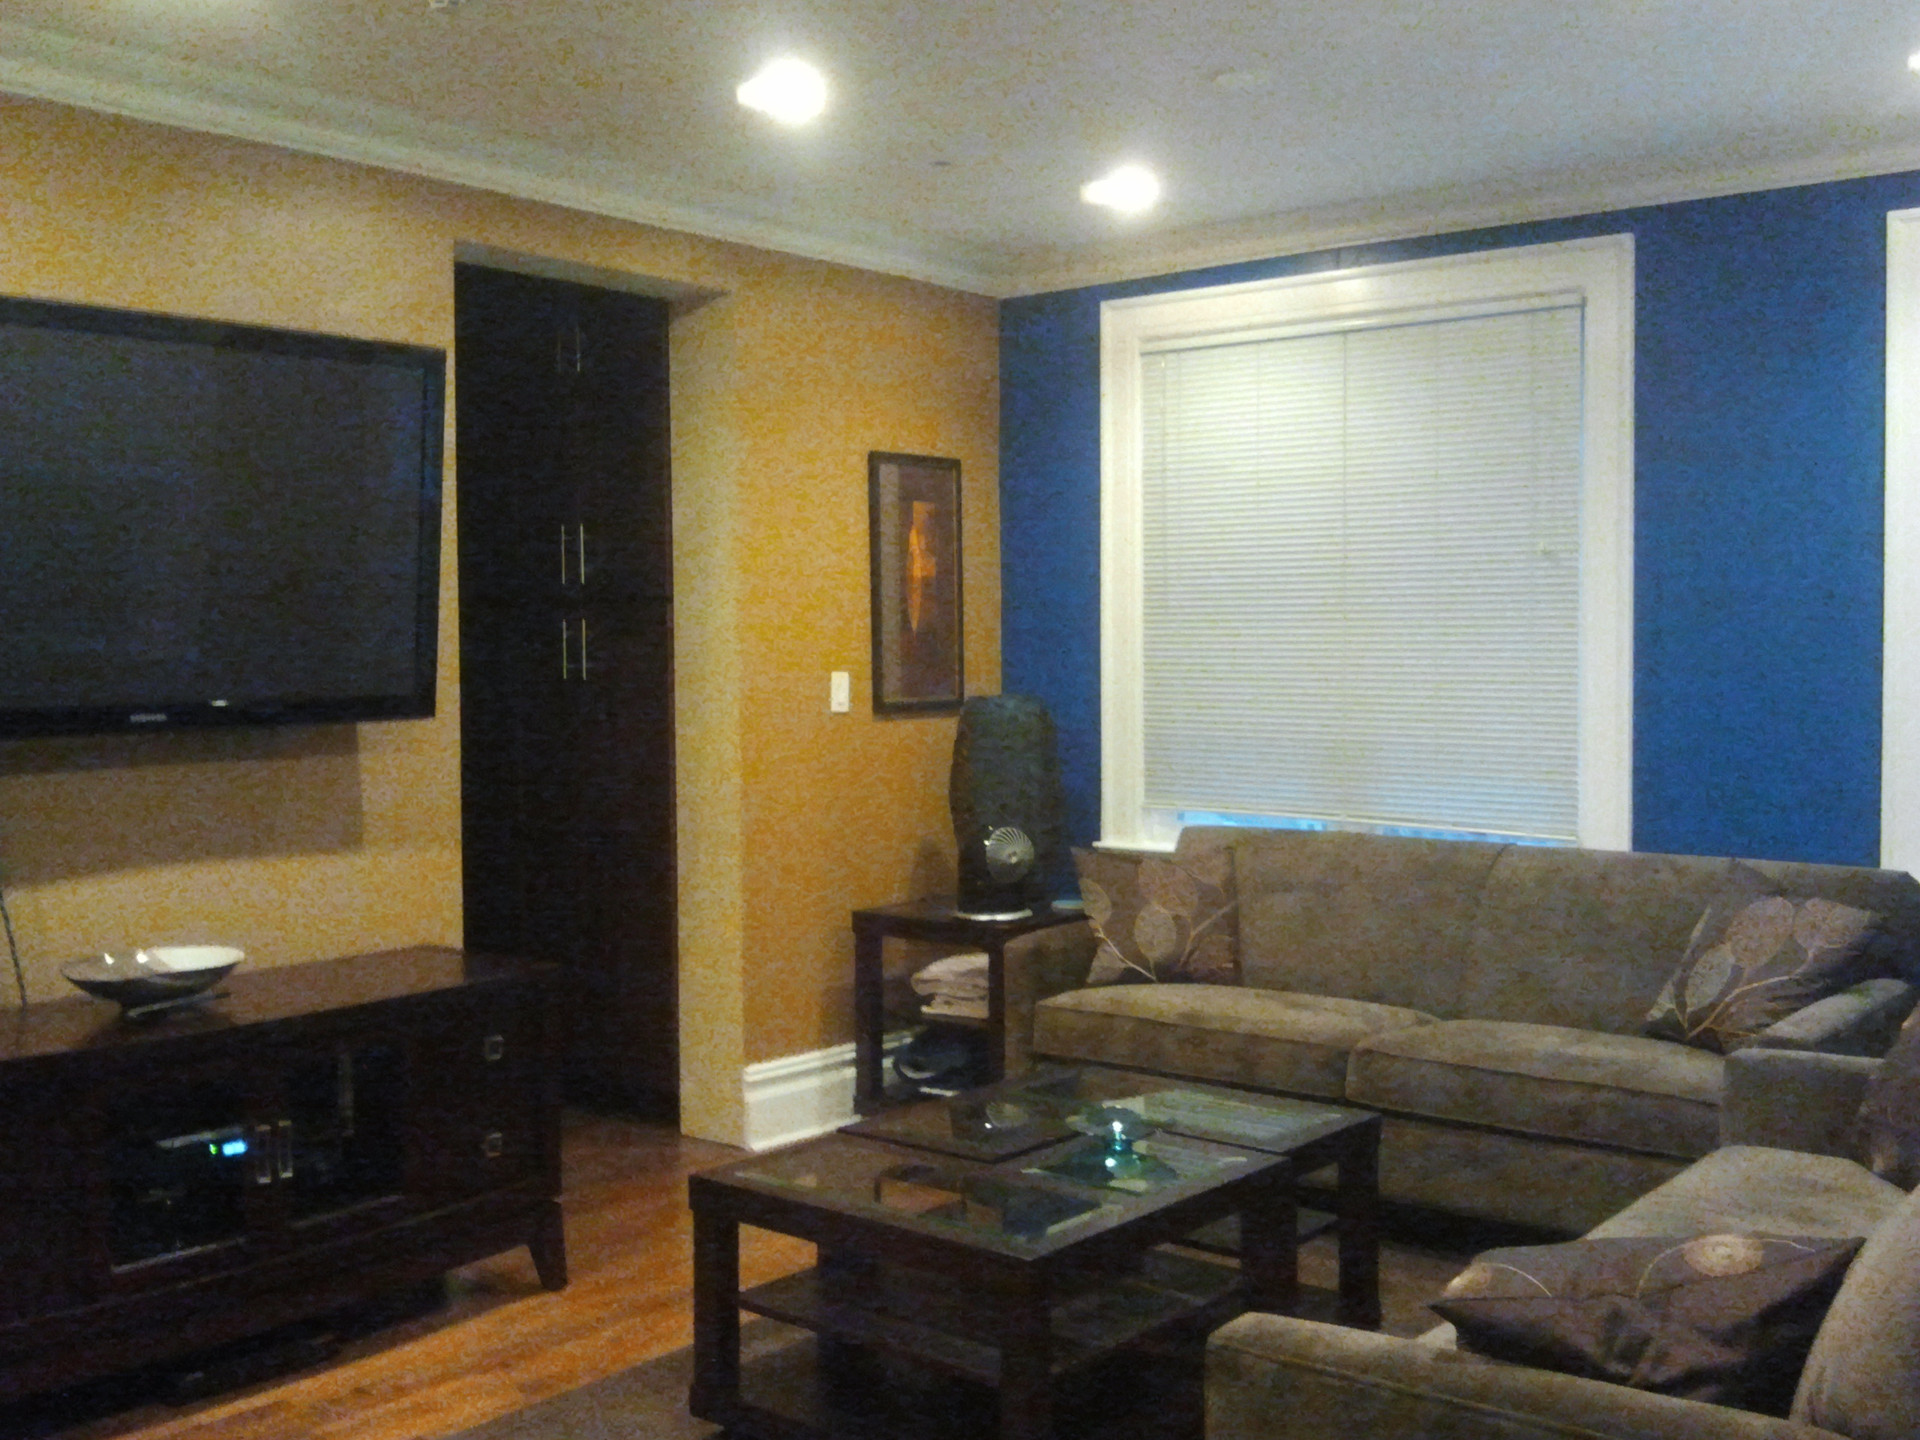 In wall 5.1 Surround Sound System